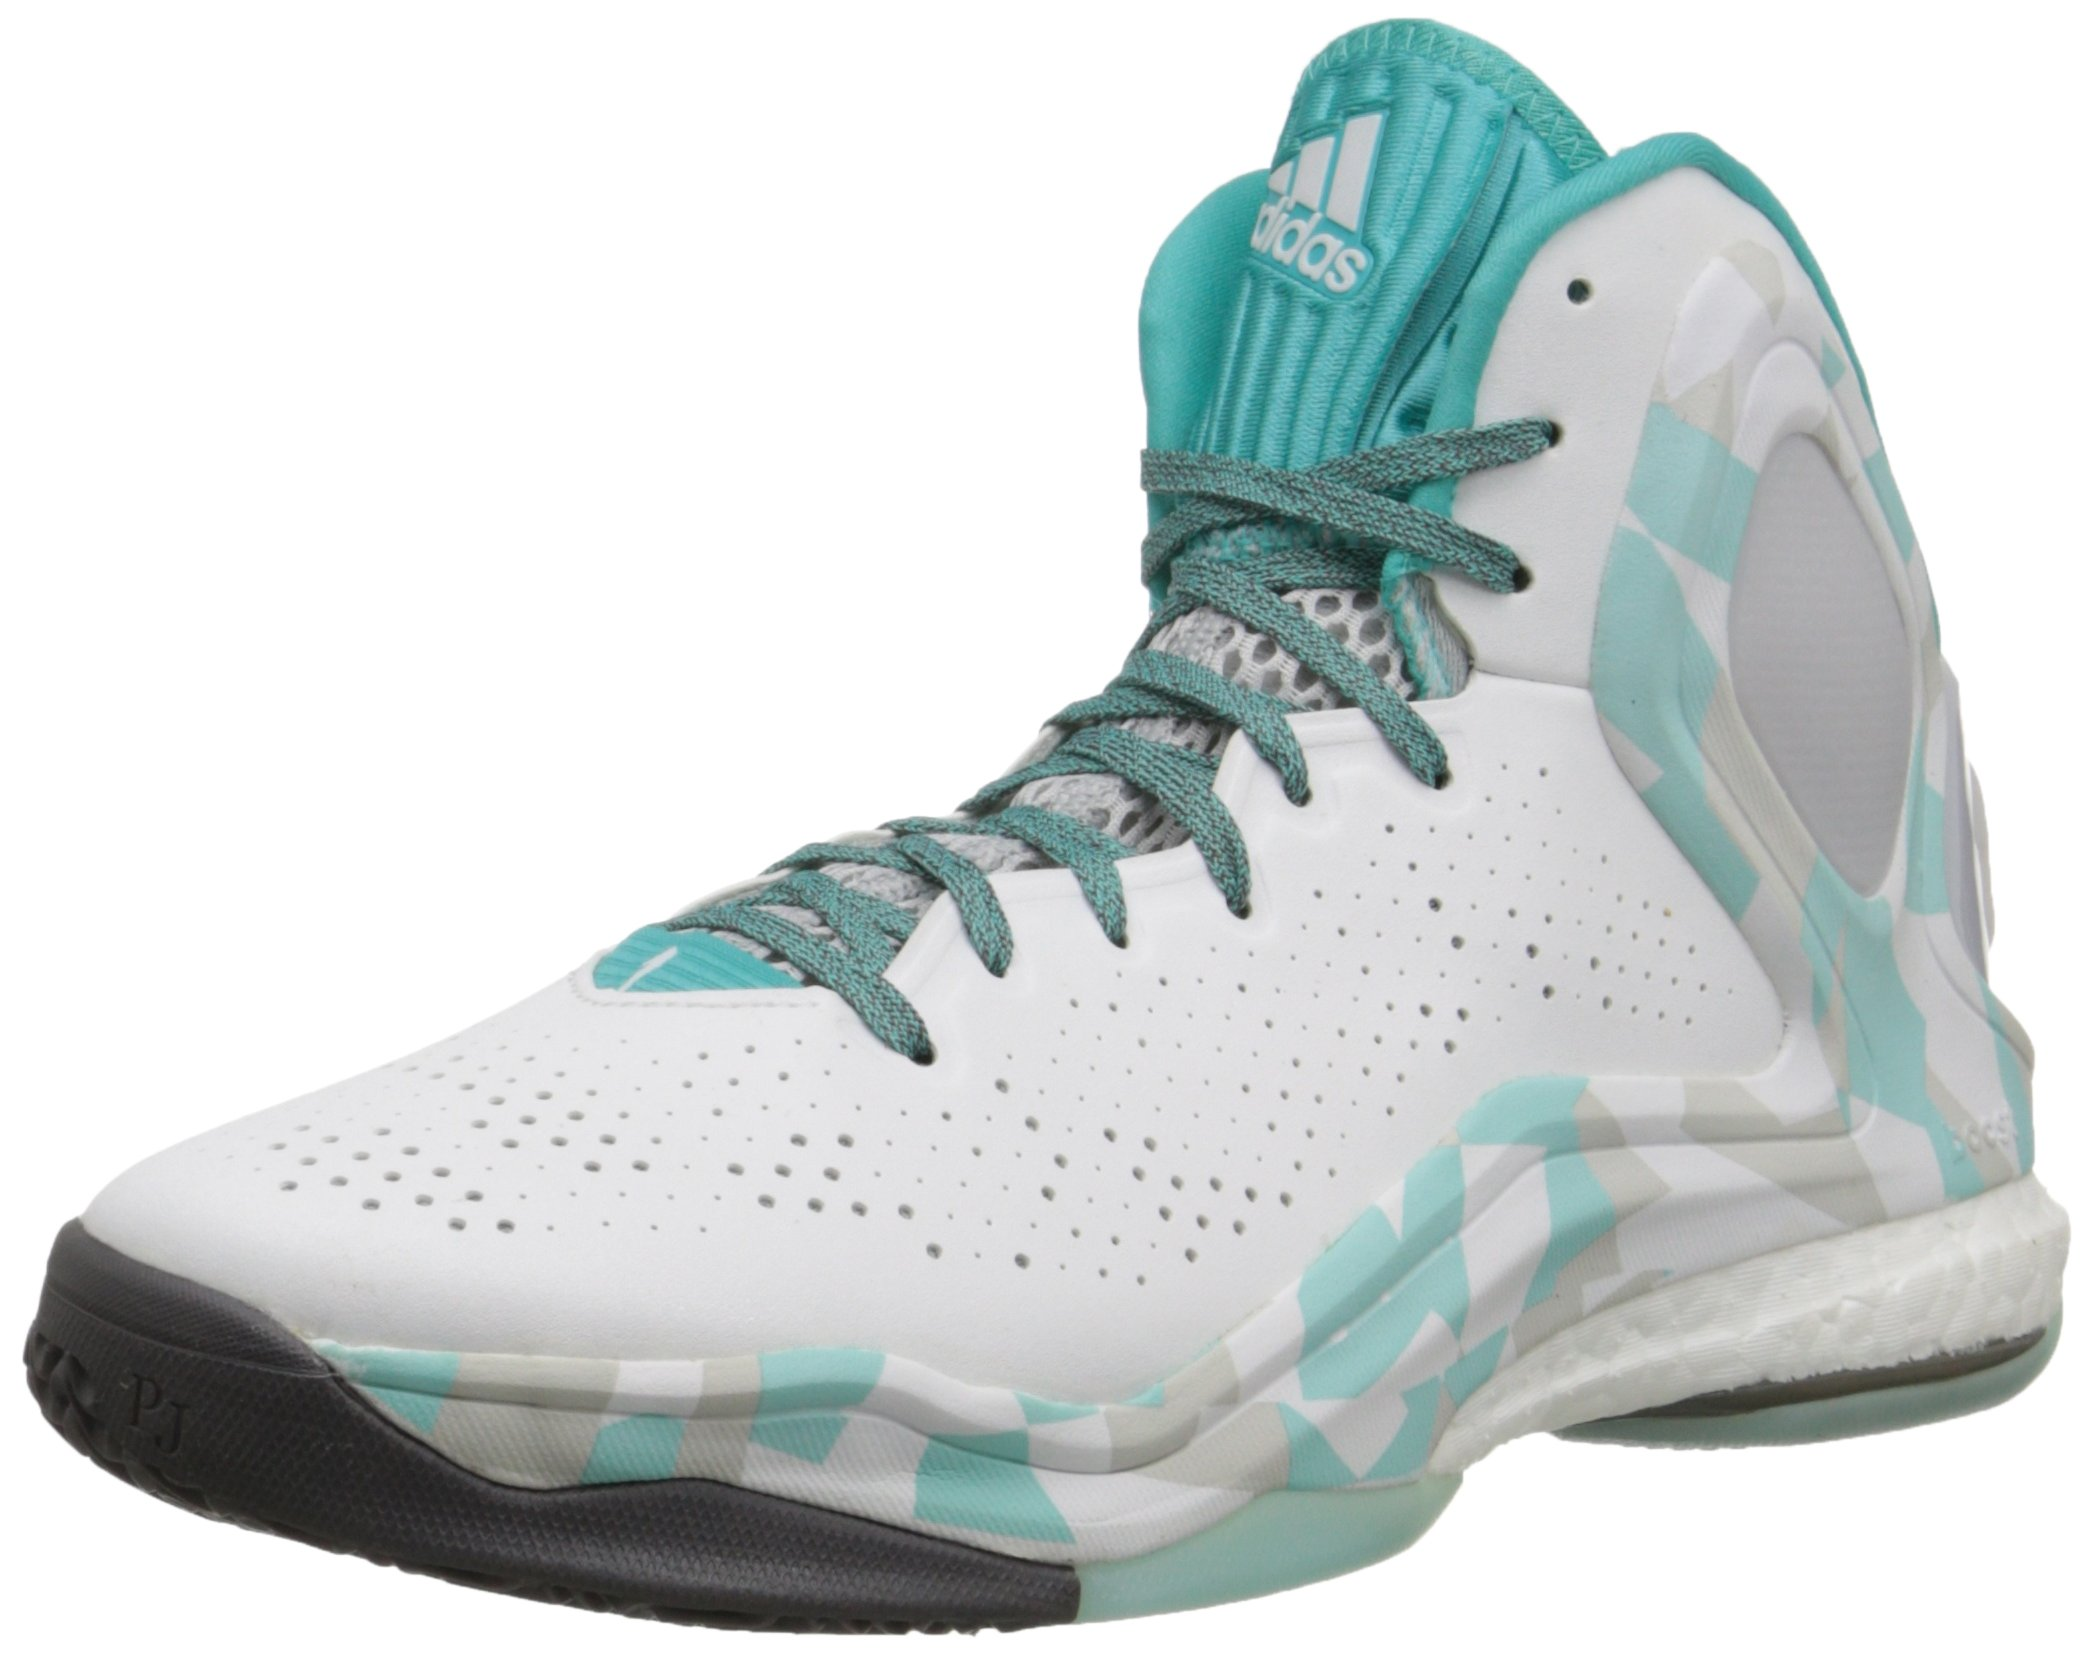 reputable site f5c24 ee1fe Galleon - Adidas Performance Men s D Rose 5 Boost Basketball Shoe,  White Grey Blue, 14 M US